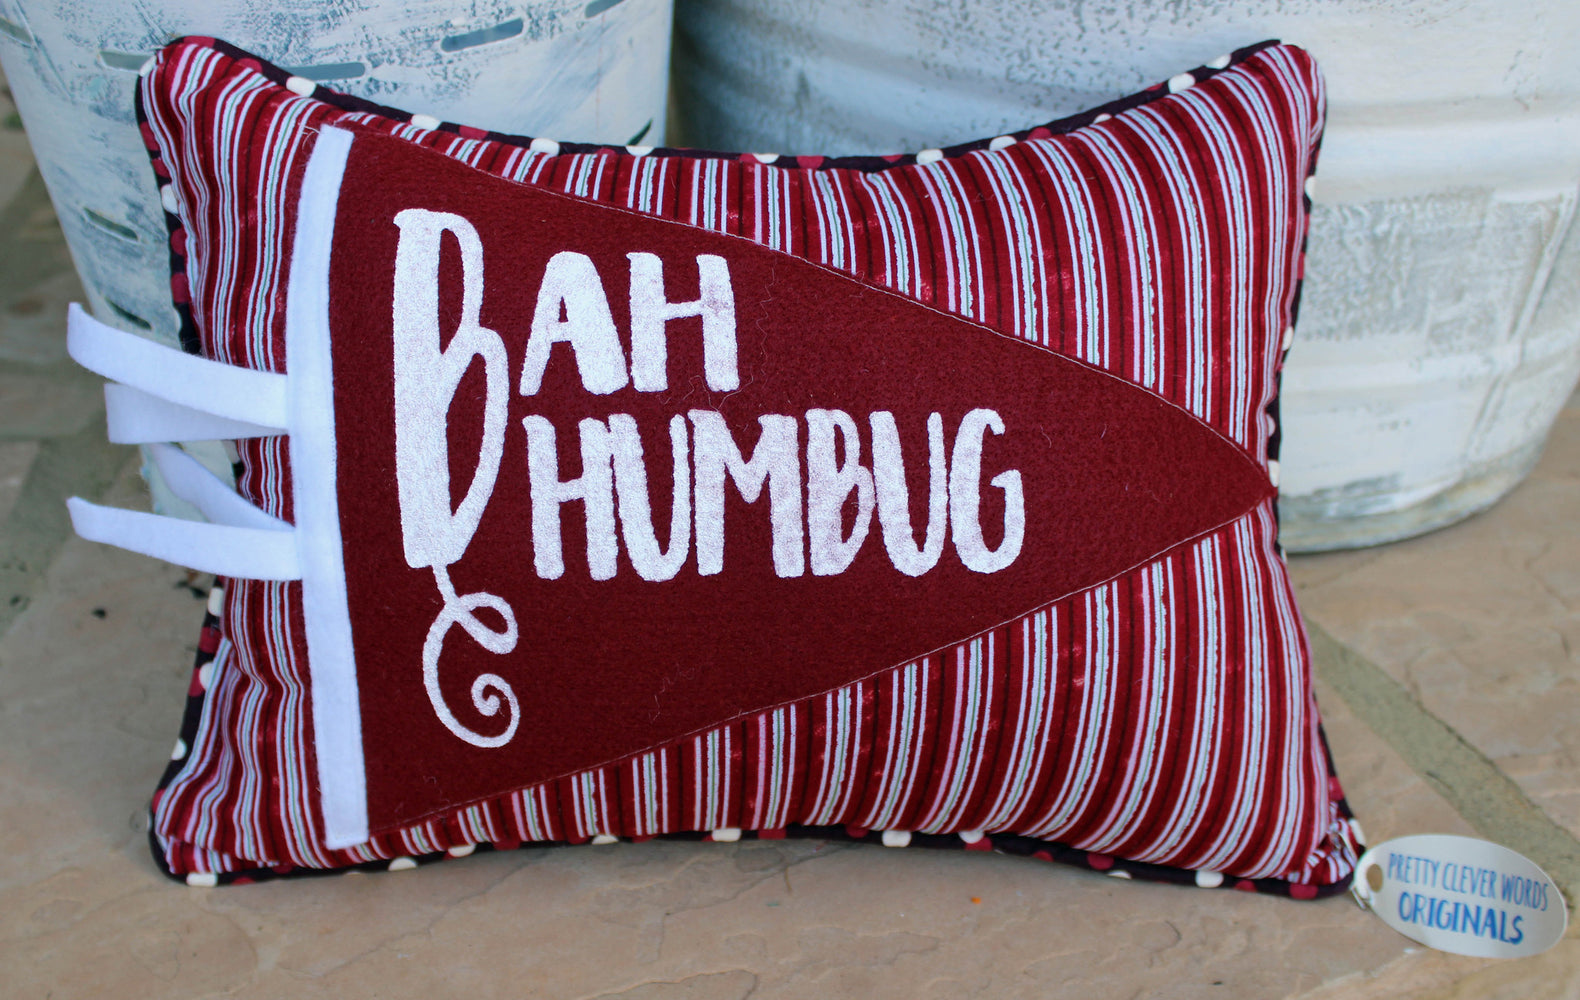 Vintage Style Pennant Pillow   Bah Humbug